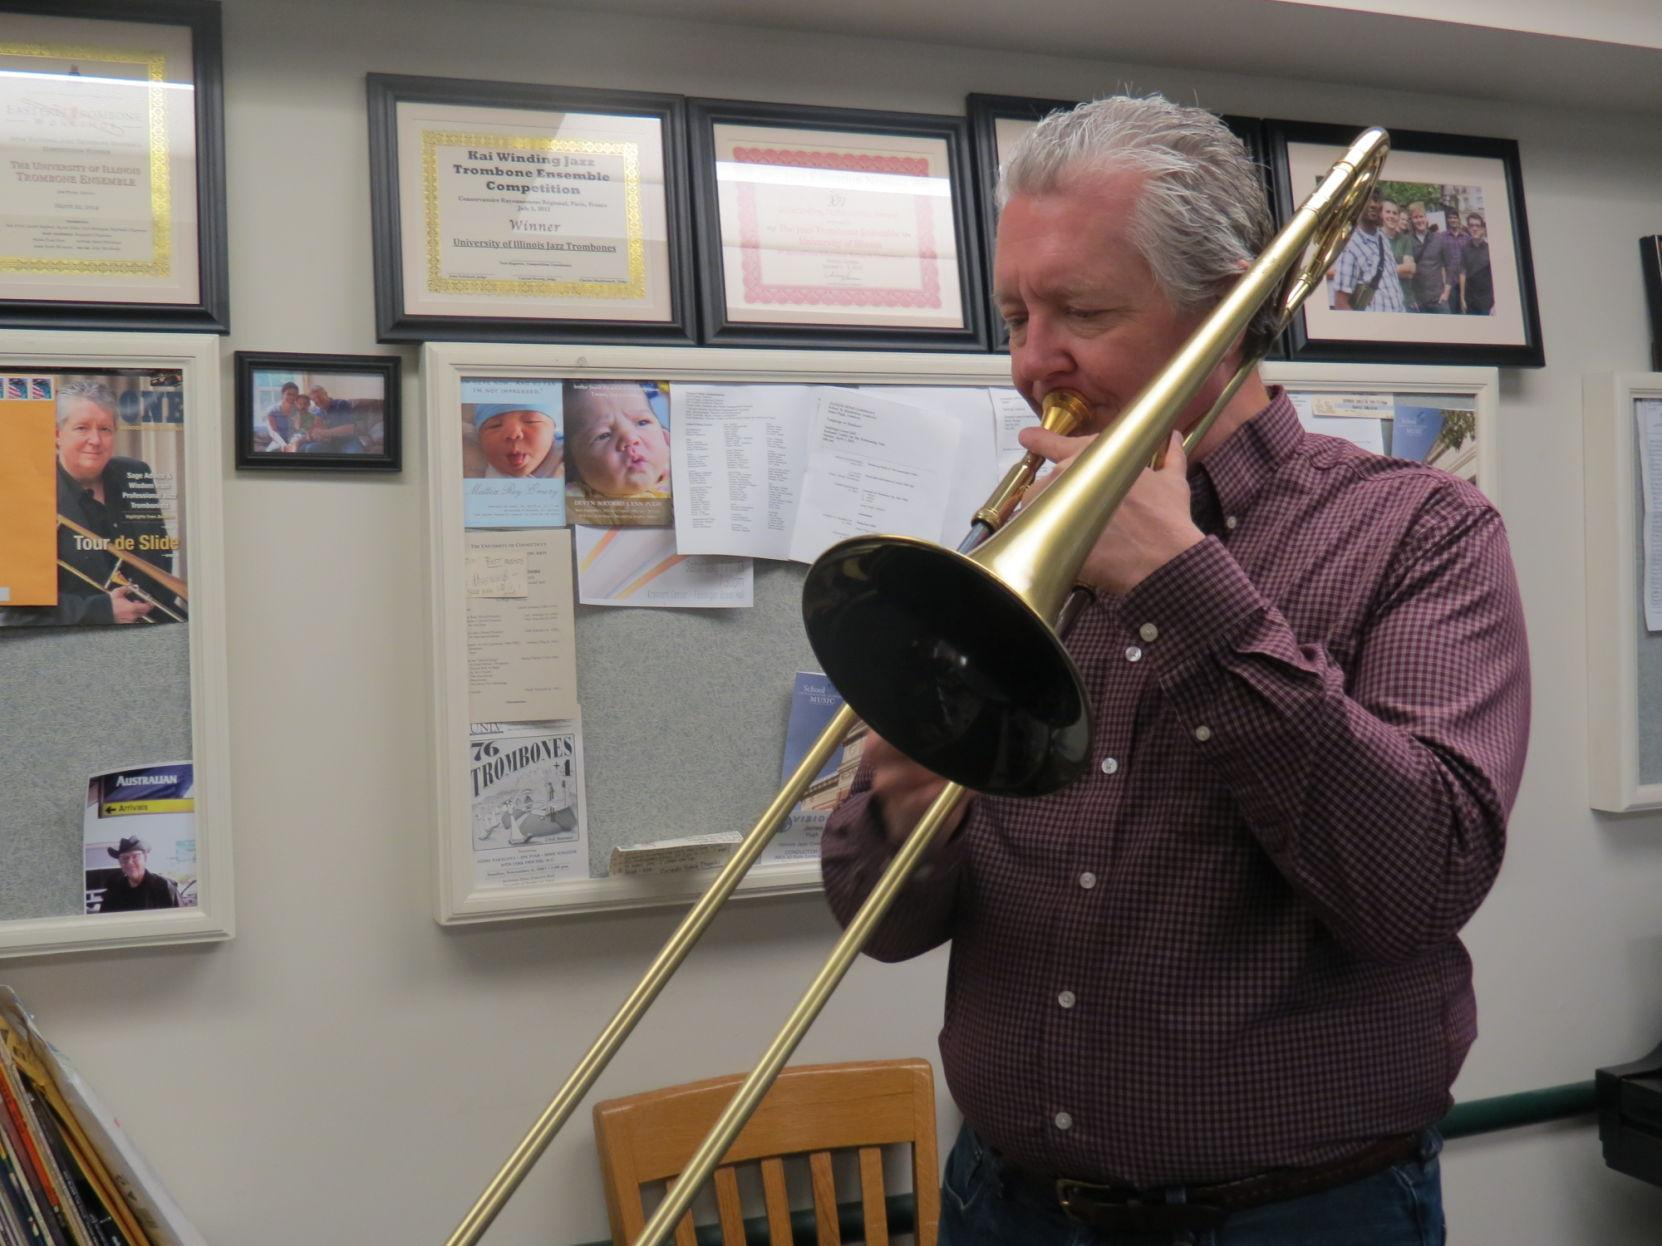 Jim Pugh, professor of jazz studies, has had a career of playing and recording music, and touring with giants, including Woody Herman, Chick Corea, Steely Dan, Michael Jackson, Madonna, Pink Floyd and Frank Sinatra.